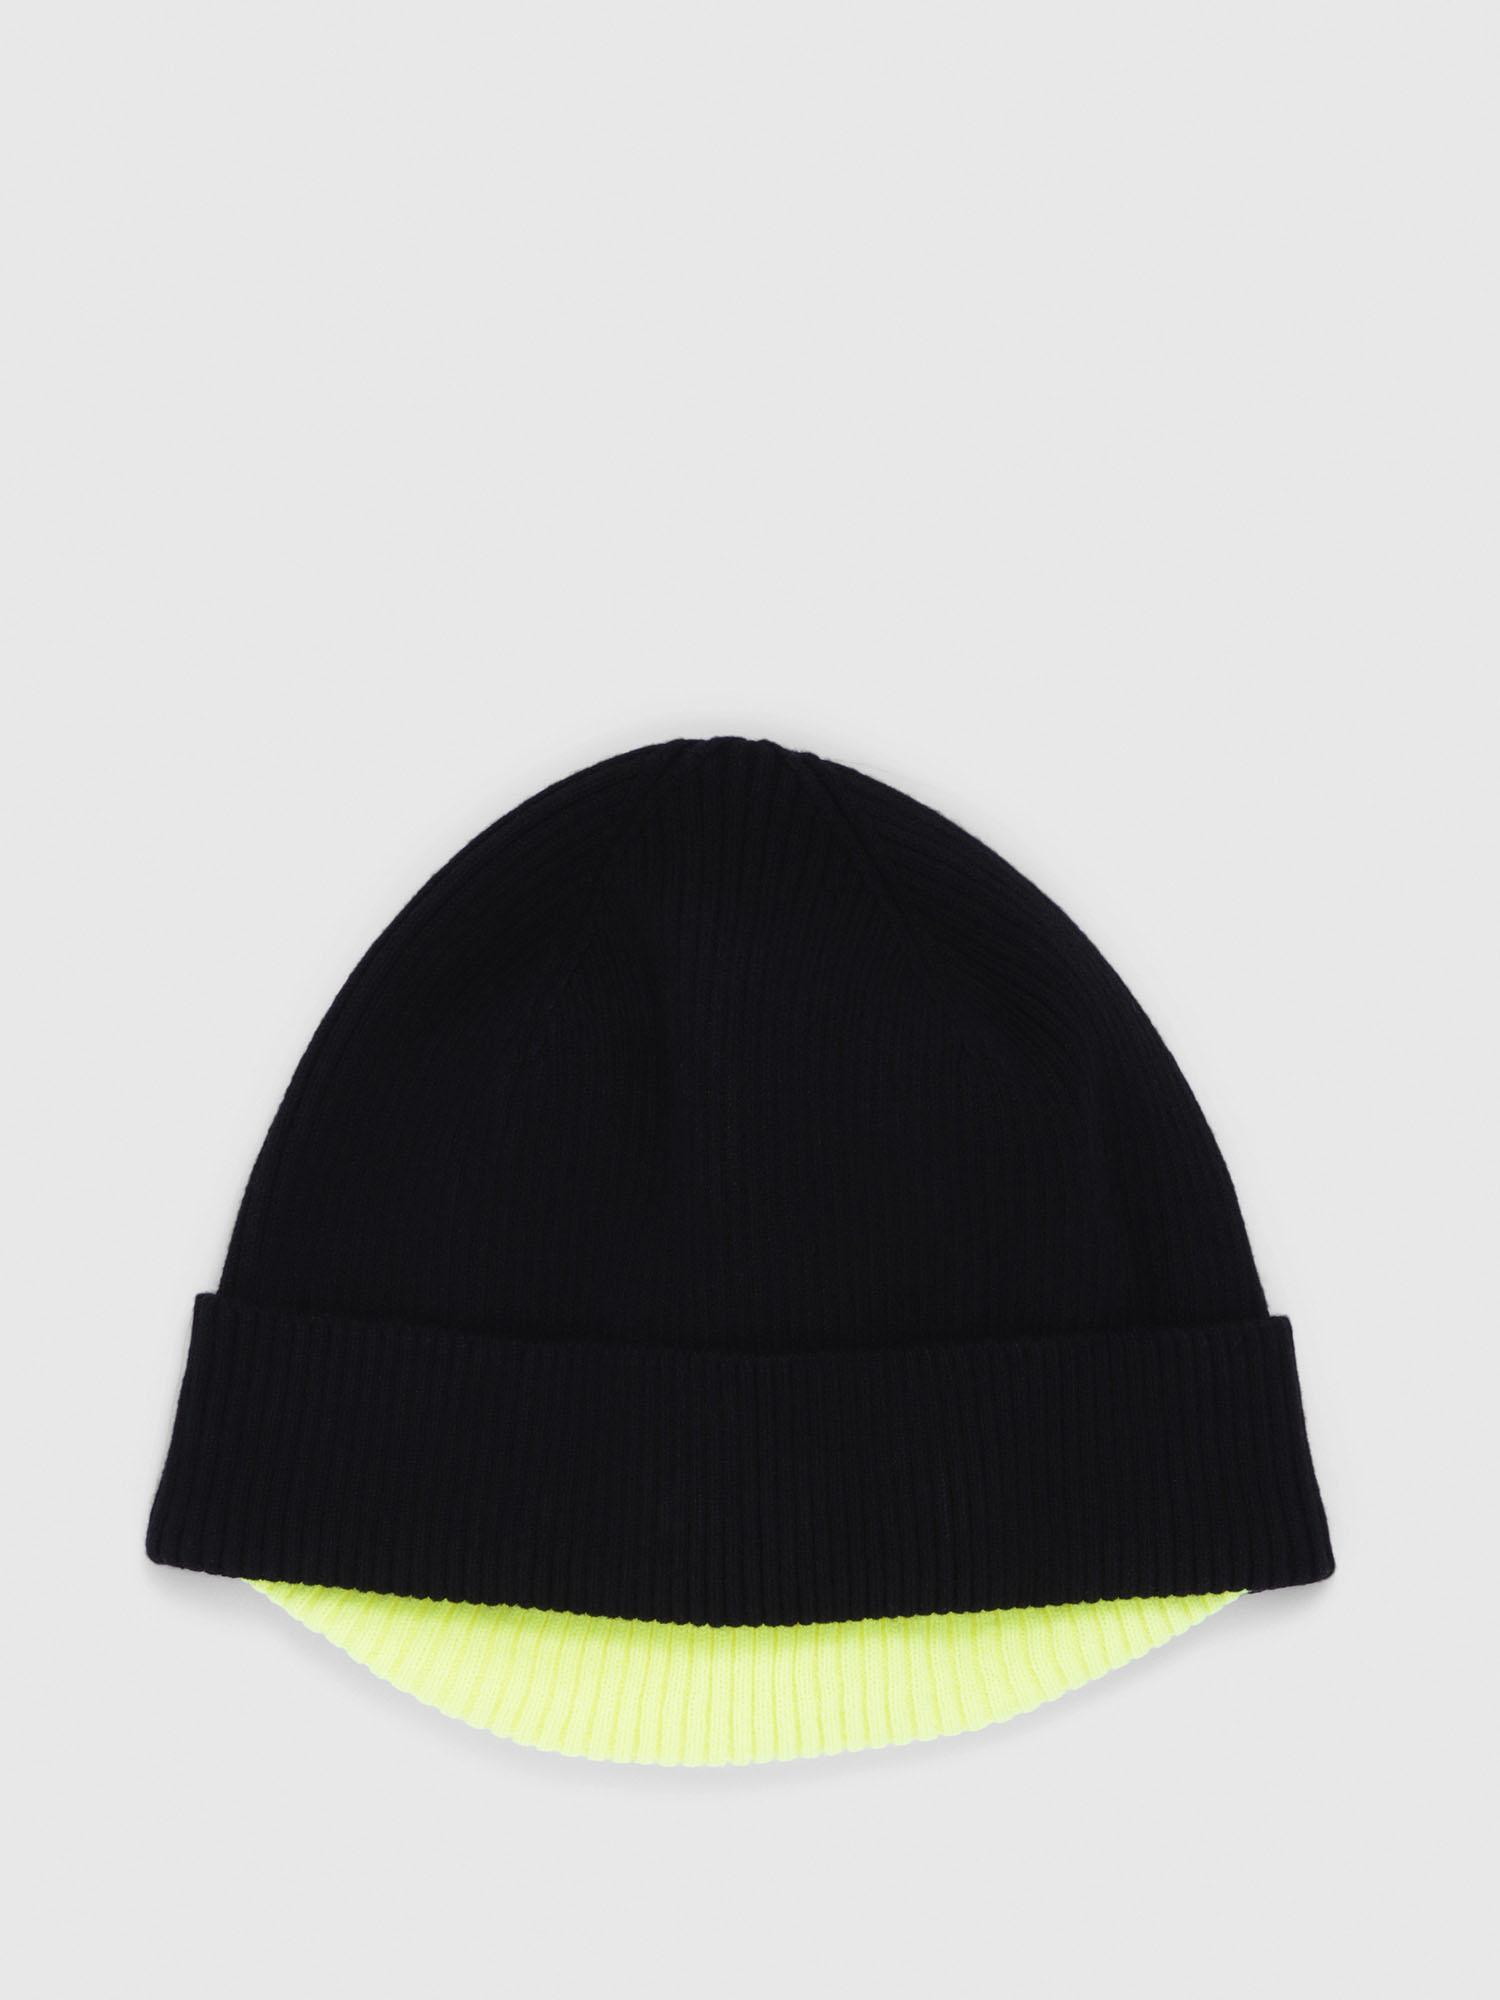 7b0e4b364e5 DIESEL - Black Knitted Cap With Ribbed Brim for Men - Lyst. View fullscreen